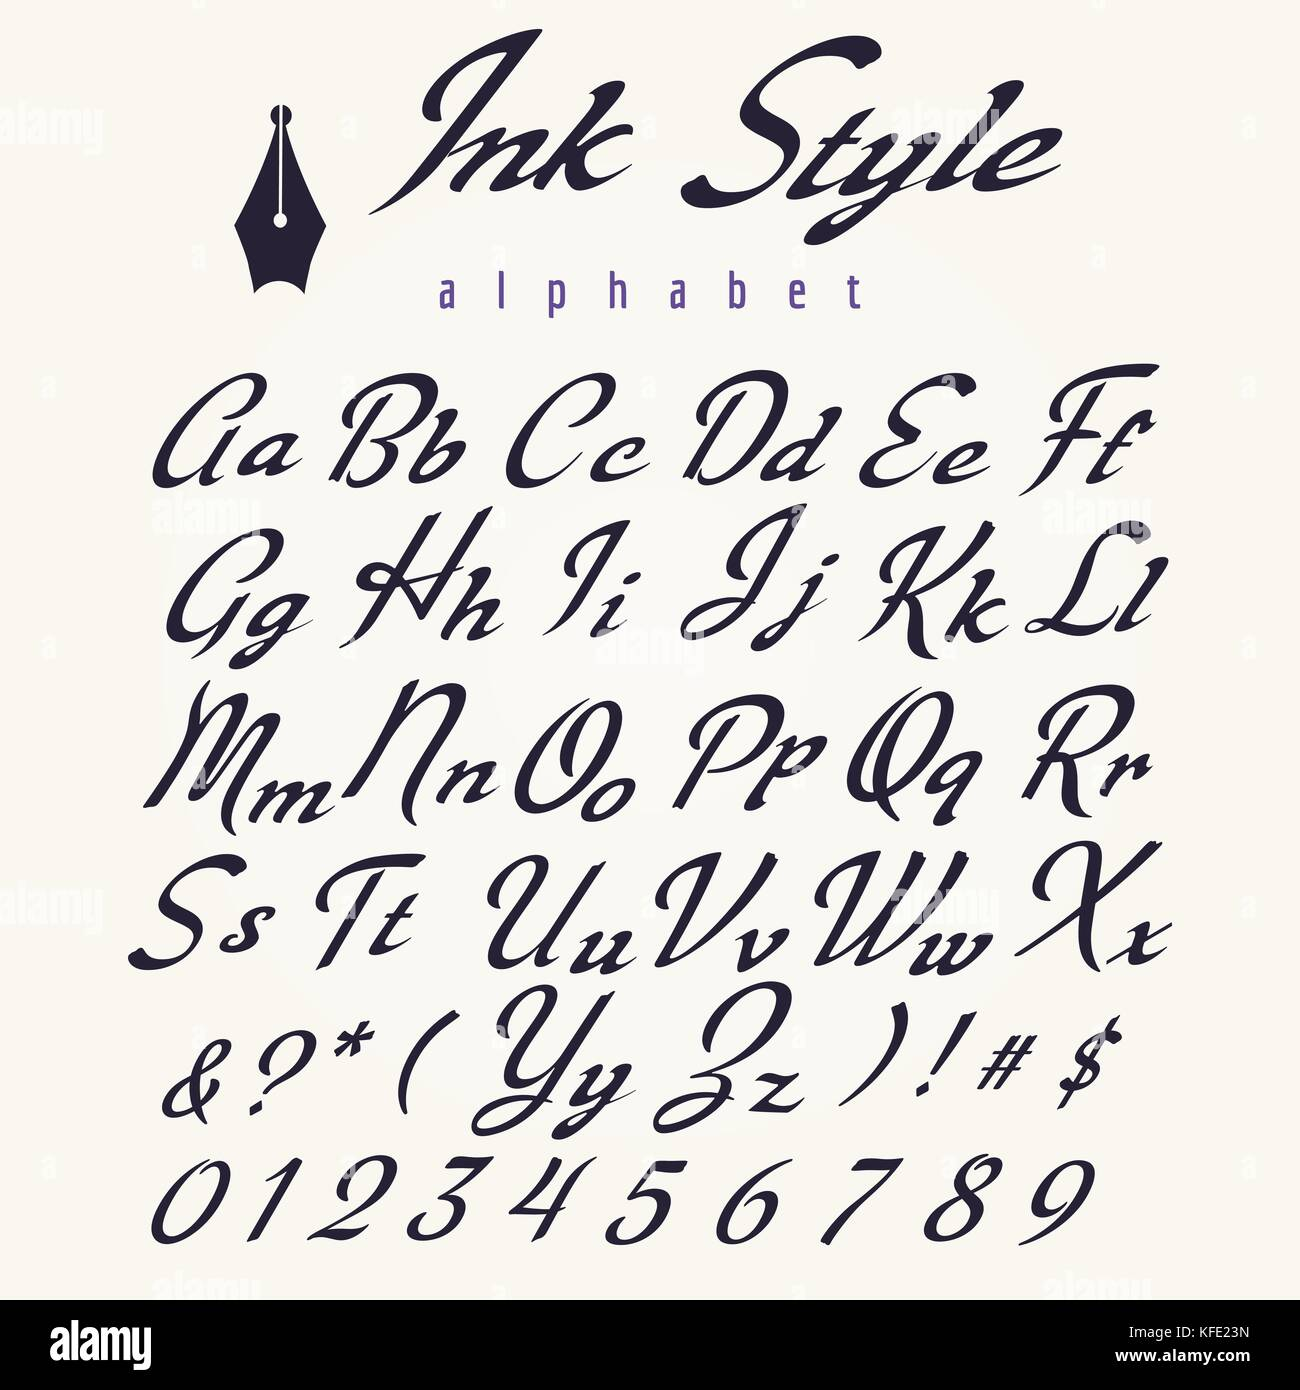 Ink Style Alphabet Retro Script Letters Hand Drawn For Wedding Invitations And Calligraphy Posters Vector Illustration